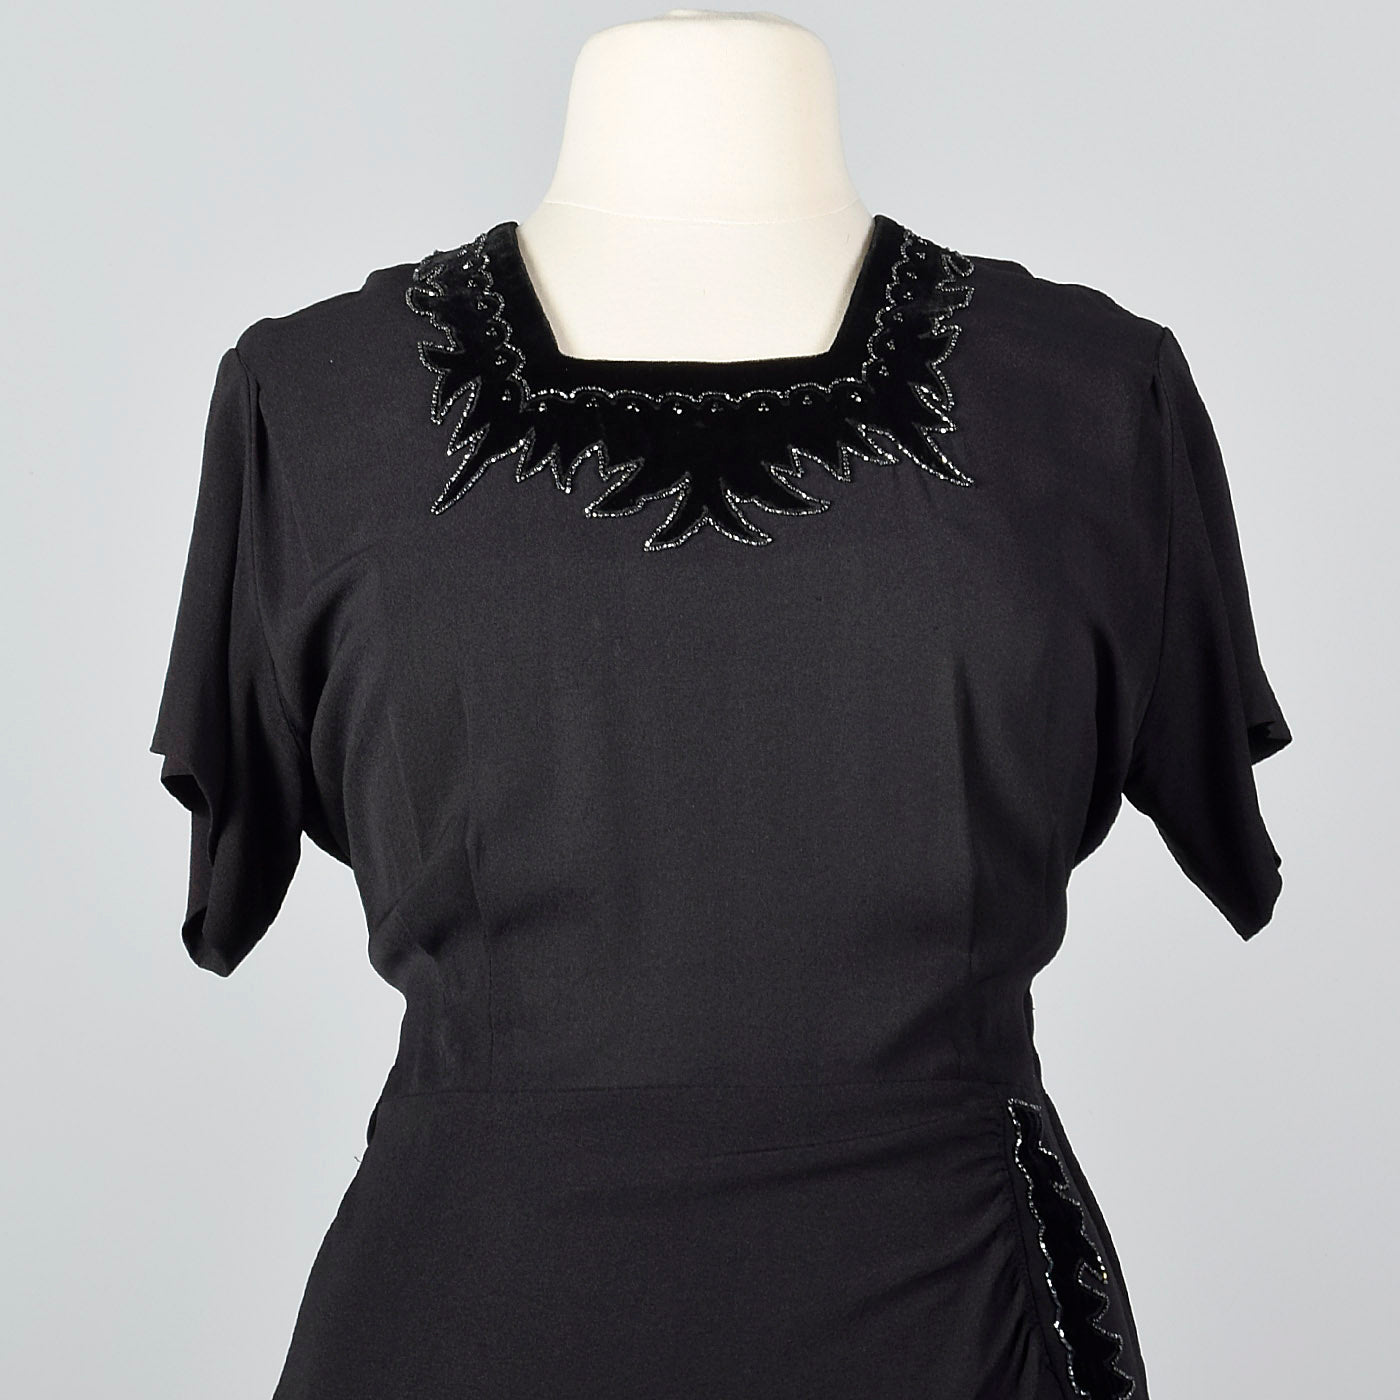 1950s Black Rayon Dress with Velvet Trim